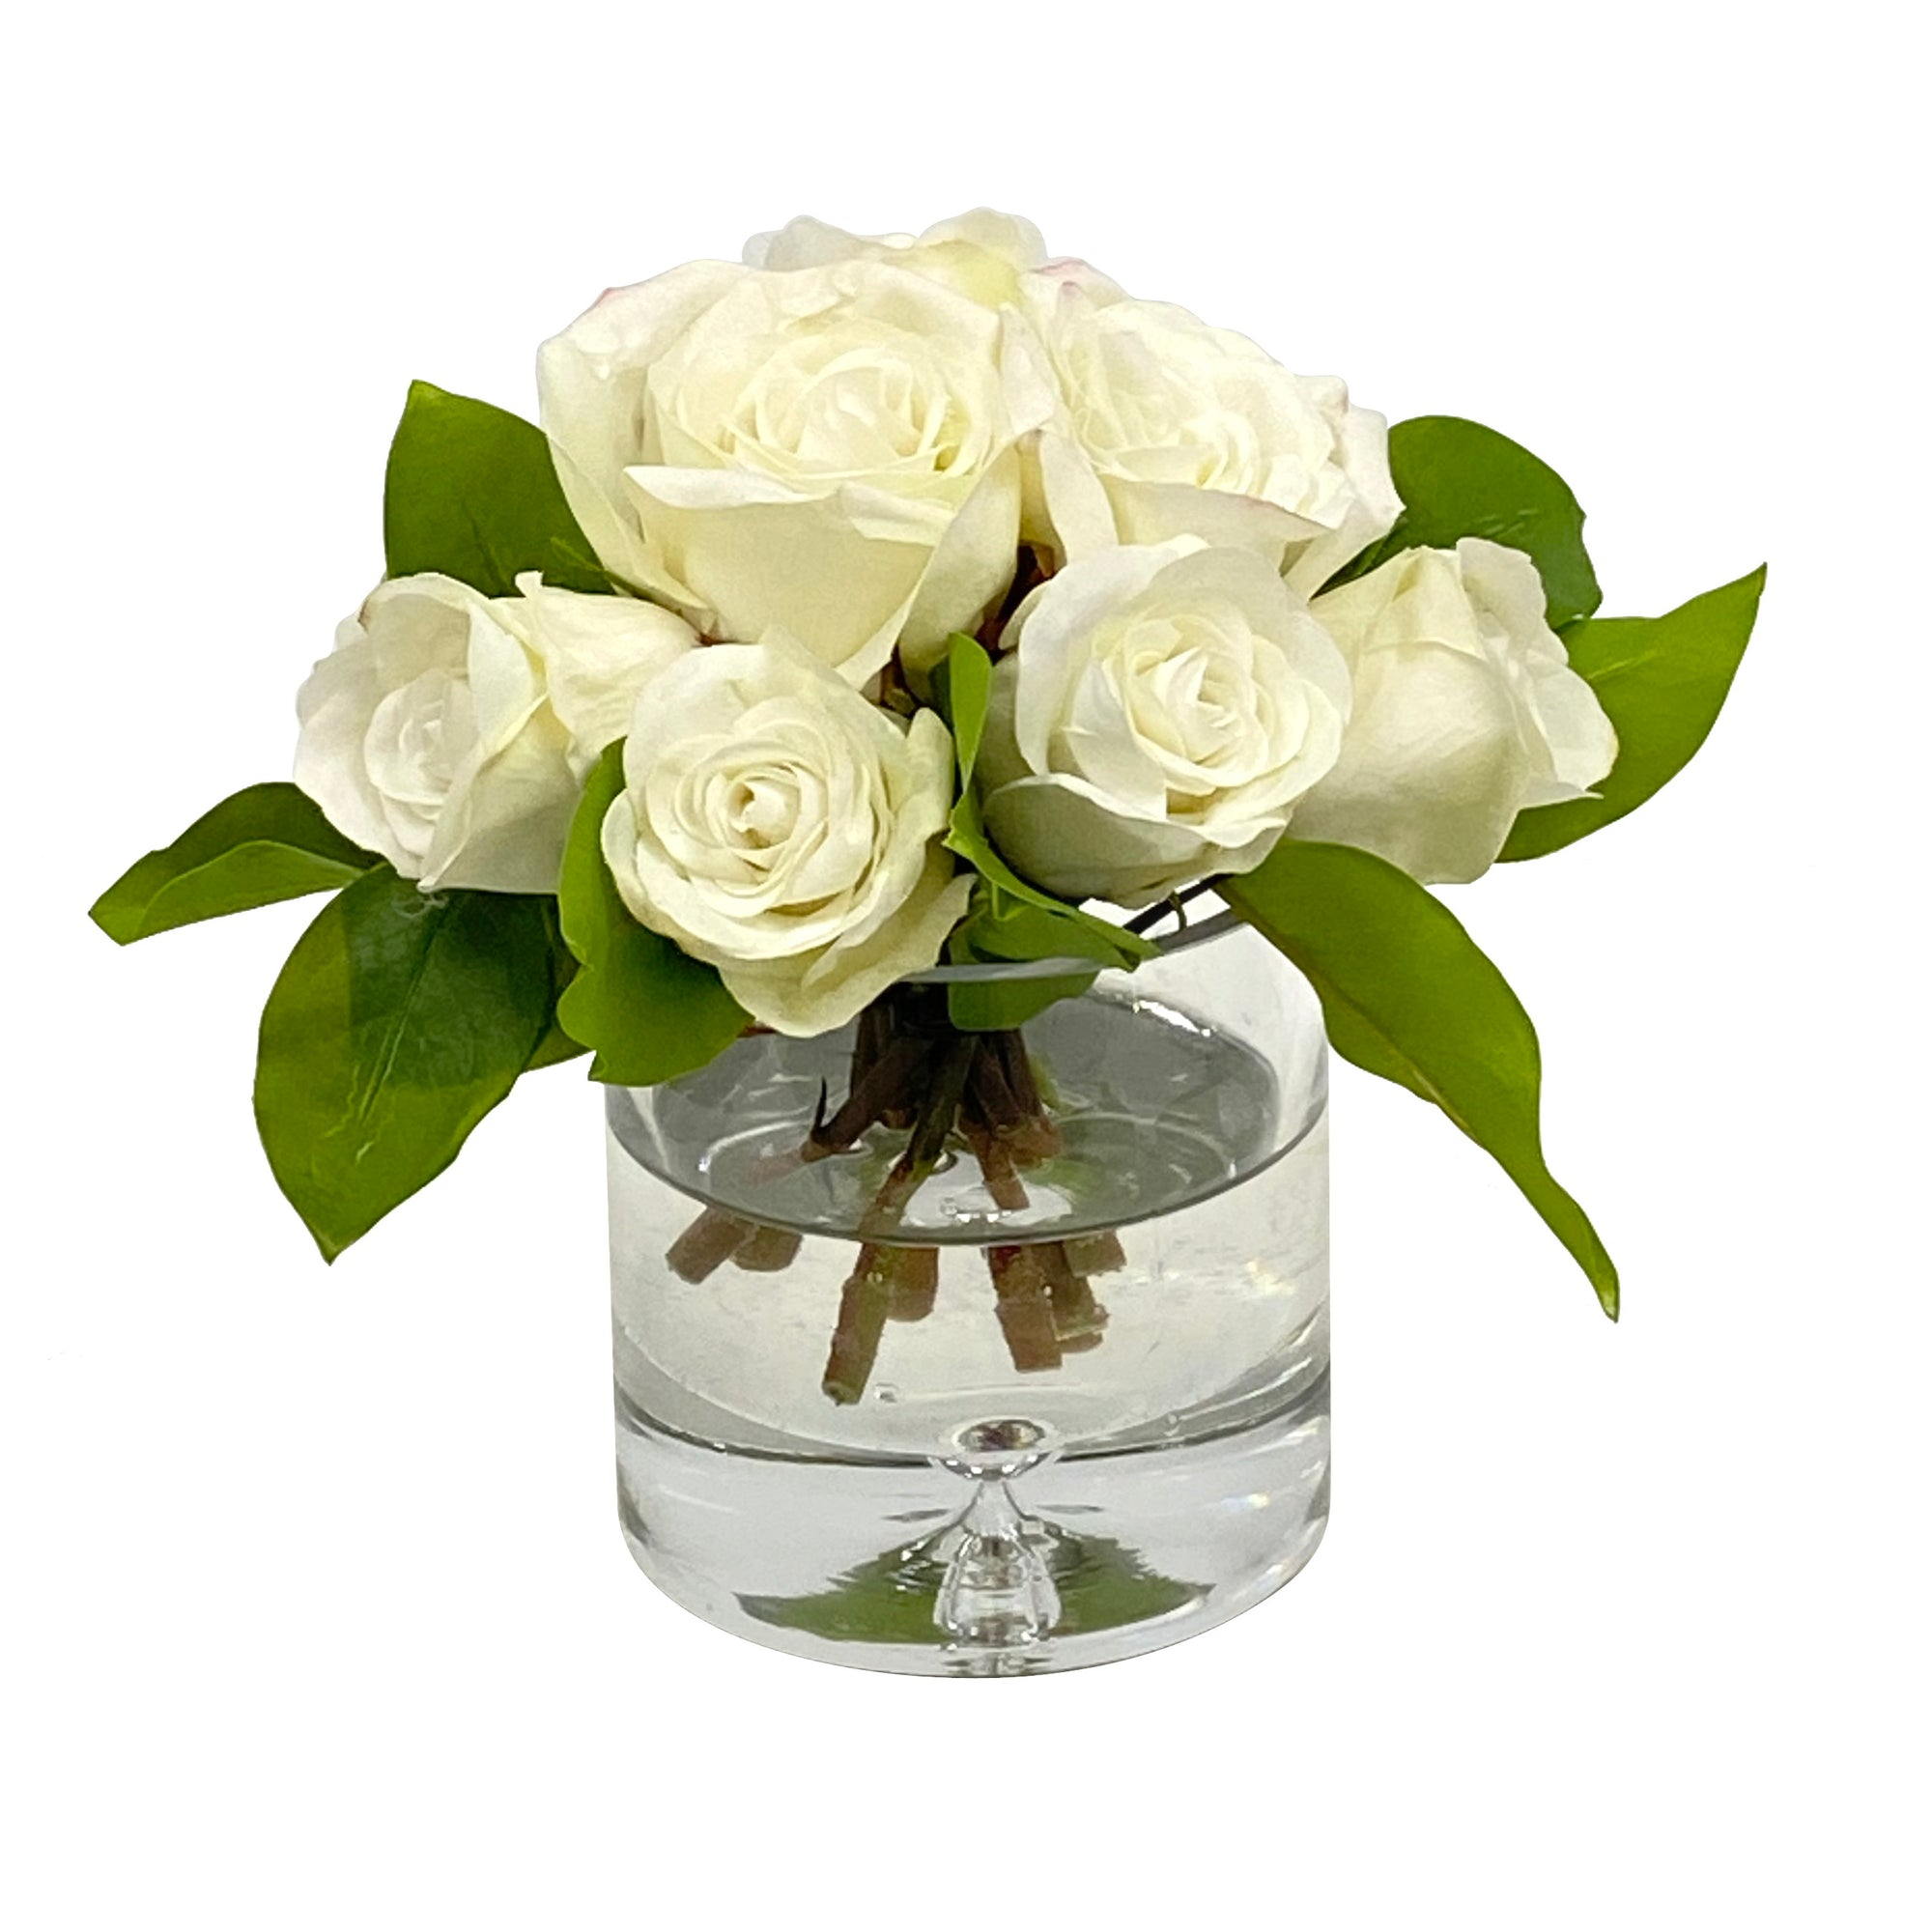 ROSE BOUQUET IN VASE 8""